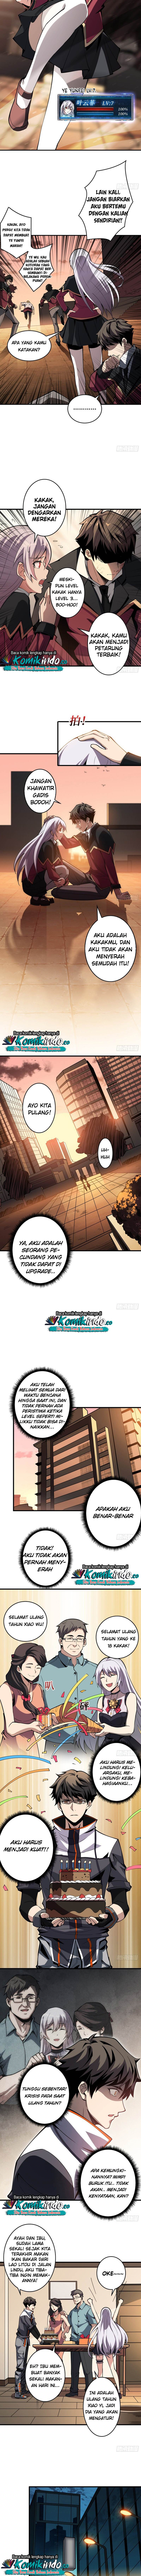 Spoiler Manhua It Starts With a Kingpin Account 3